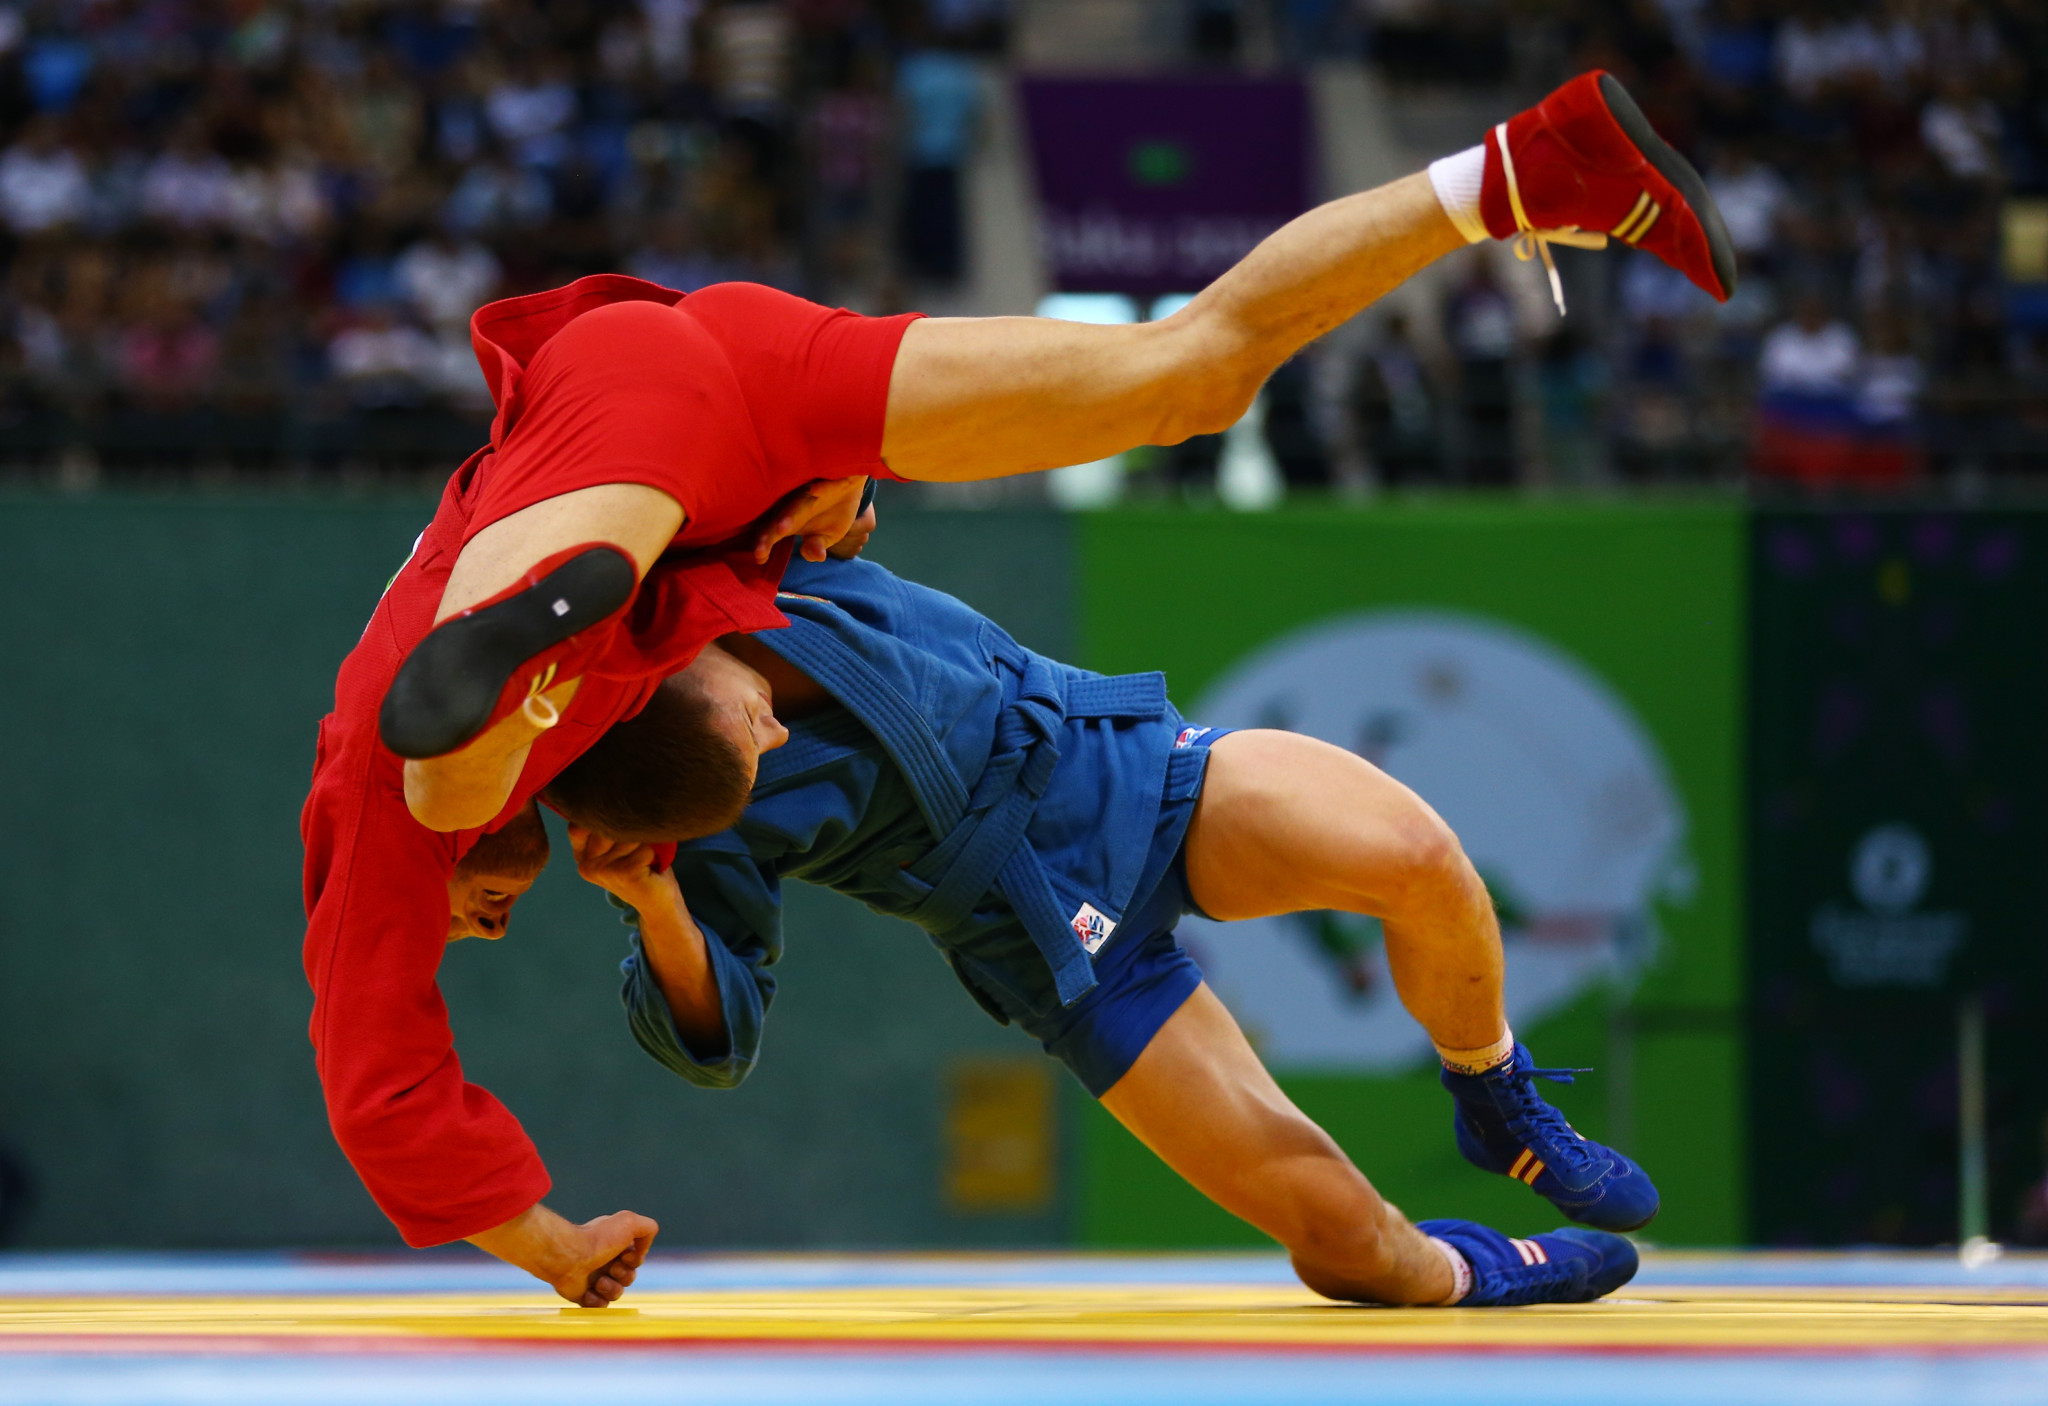 The Sambo World Cup is set to be held in front a half-capacity crowd ©Getty Images